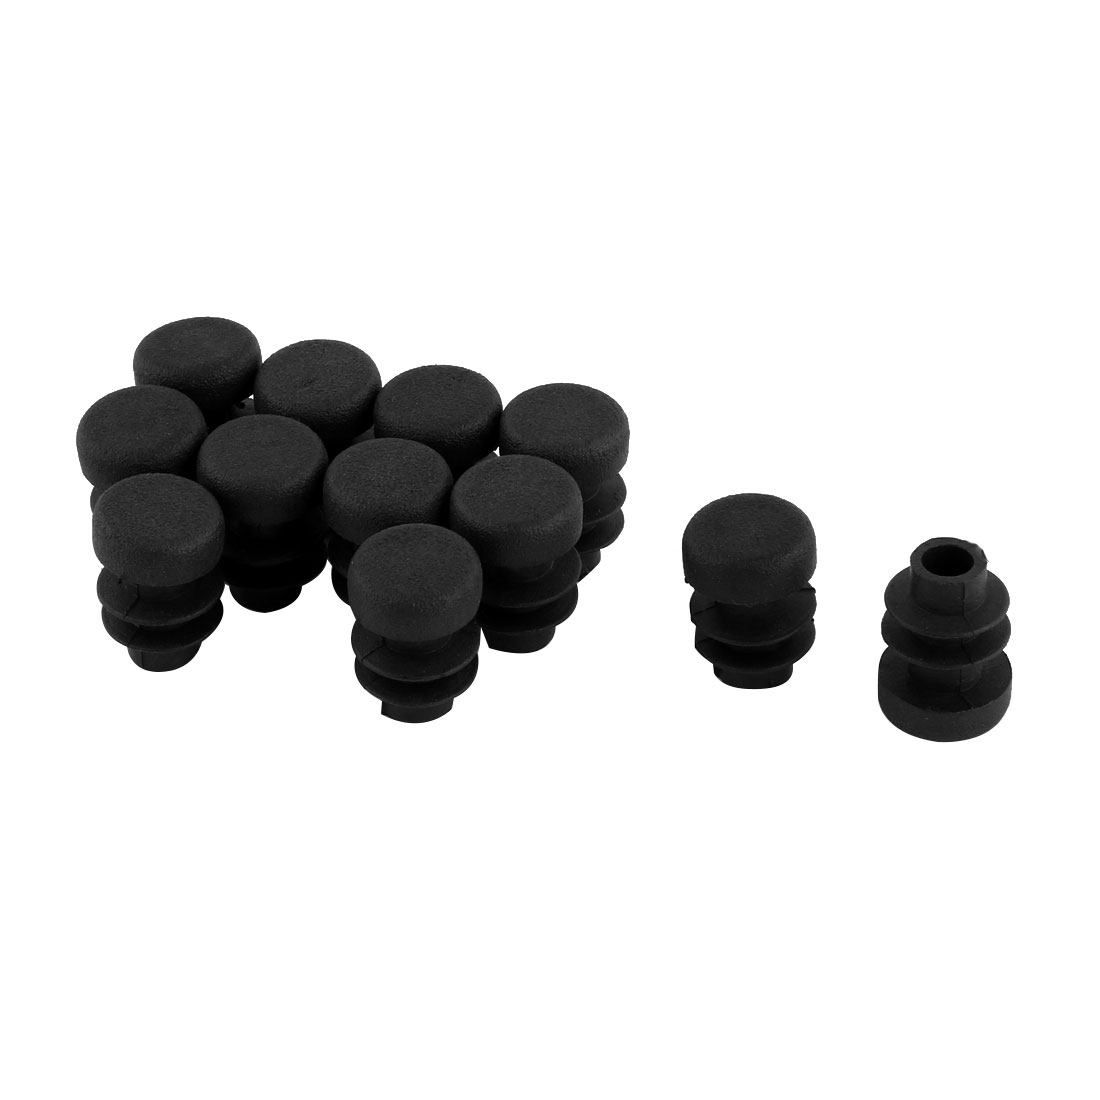 12 Pcs Black Plastic 12mm Pipe End Blanking Caps Bung Tube Tubing Insert Plugs Round